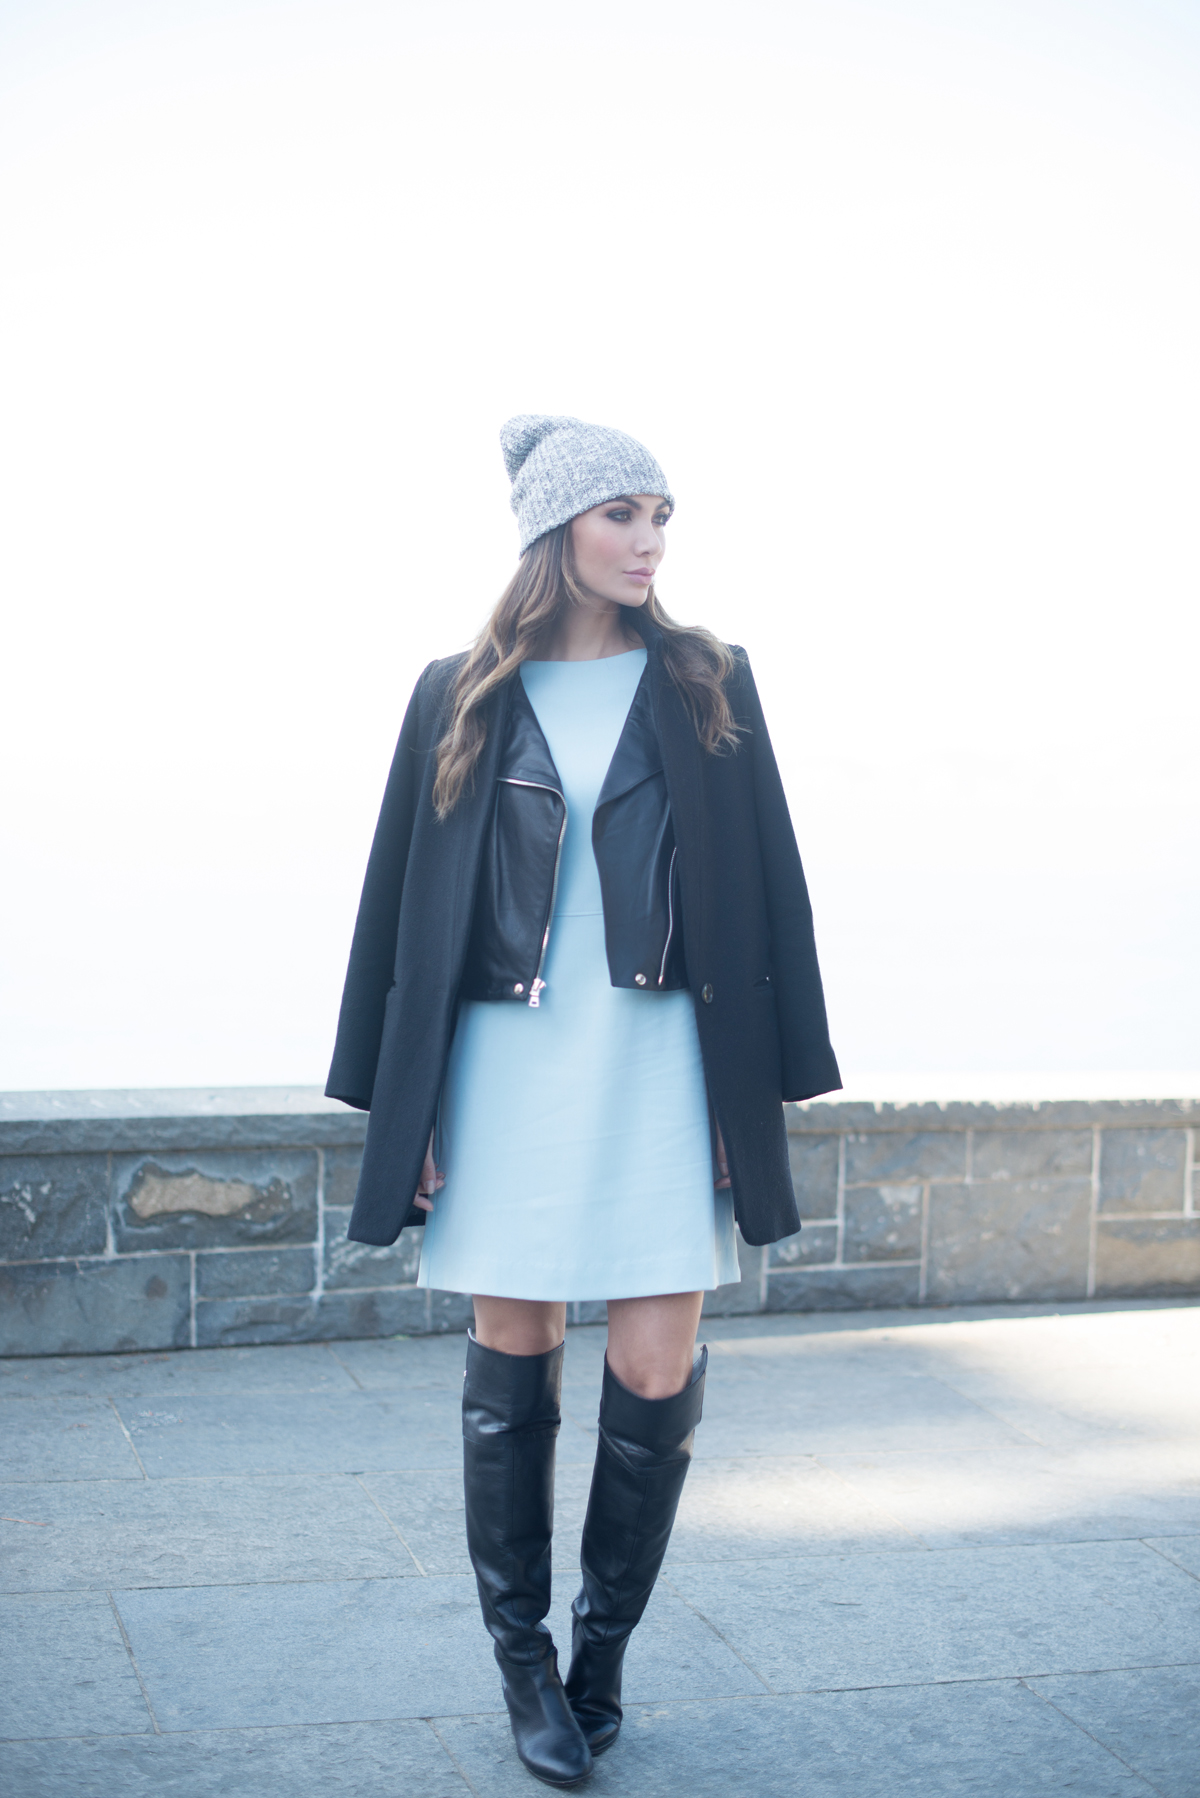 WEARING:    American Apparel Fisherman Beanie ,  Kim and Proper Dress ,  Reformation Arctic Leather Jacket ,  Pink Tartan Car Coat  , Zara Boots (  similar here  ), Love Juliet   Constance Cuff   and   Ara Cuff